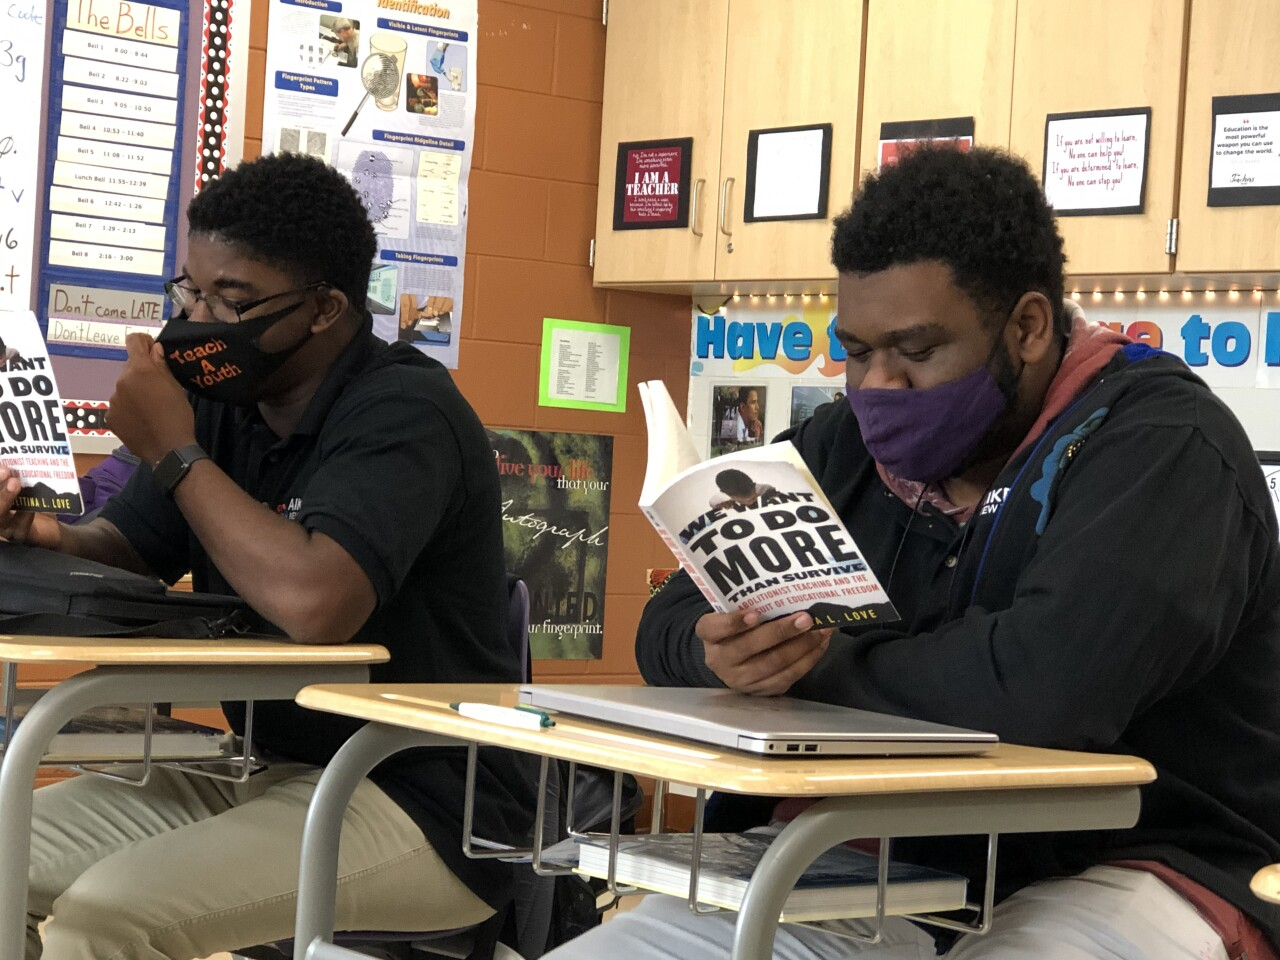 Two Aiken High School students read in preparation for their book club with Keith LaMar. Both students have short, dark hair and are wearing masks.